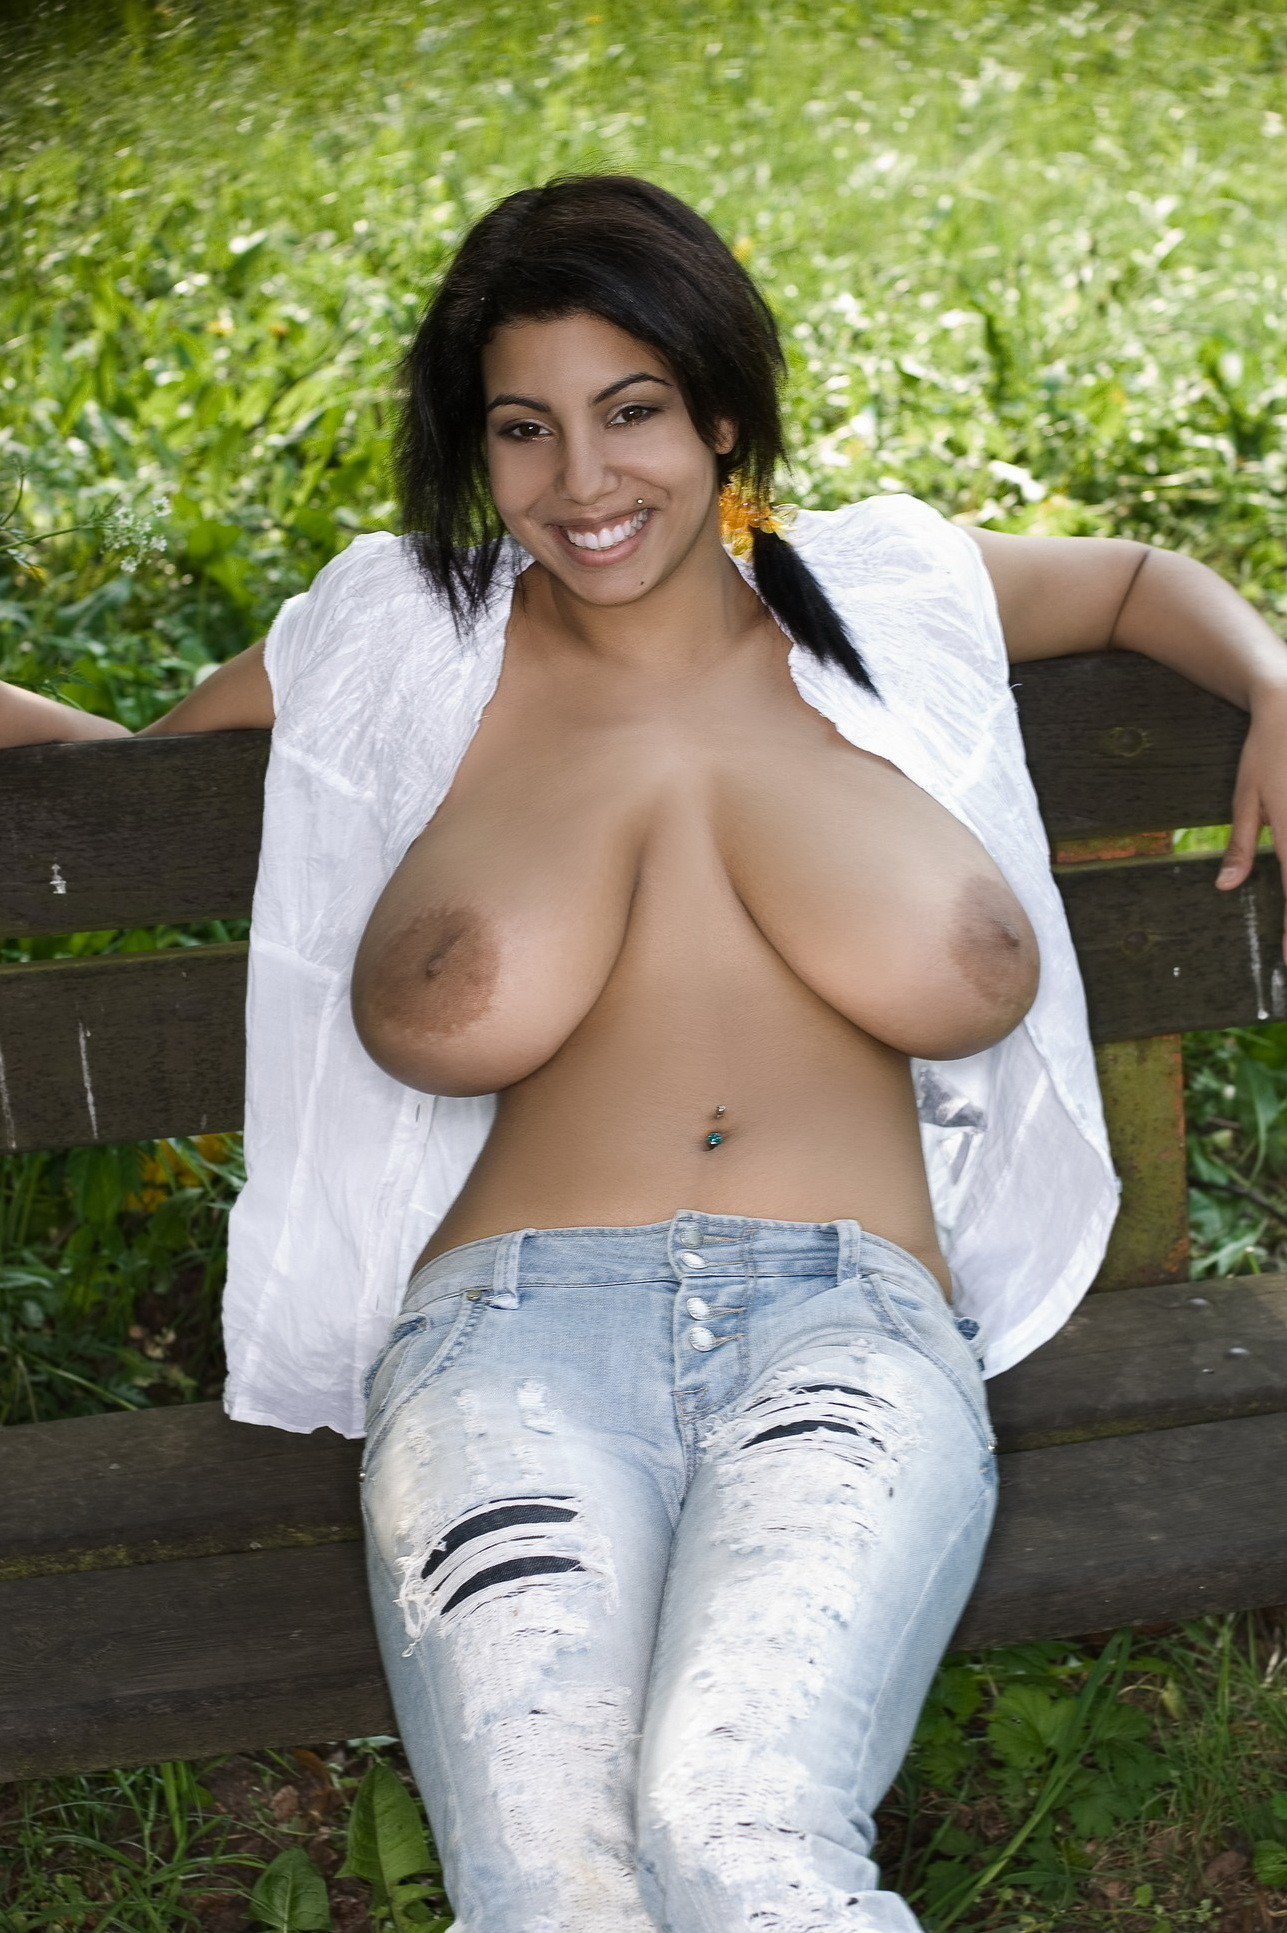 Mexican women breast nude